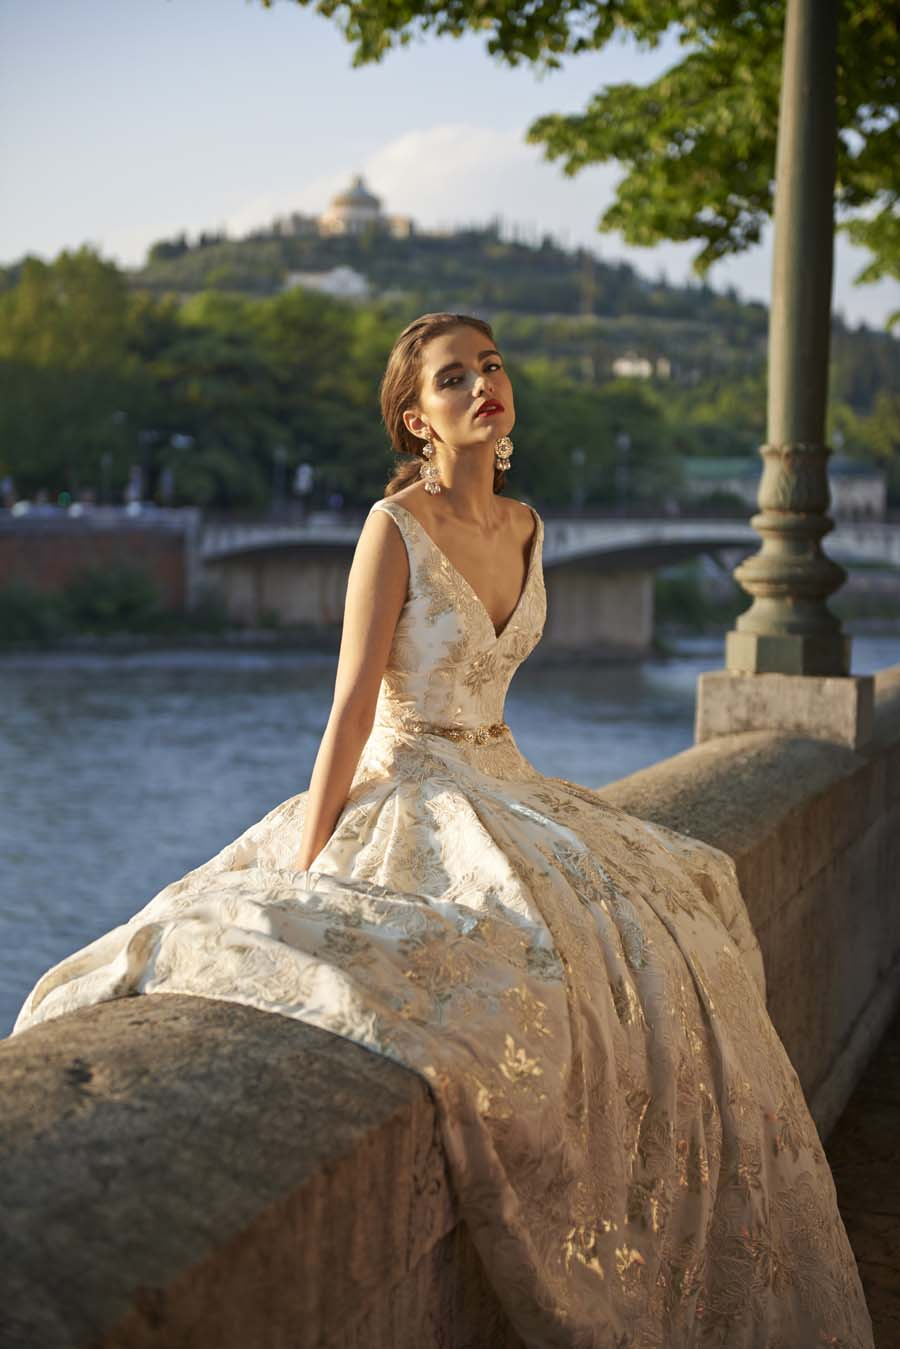 Stephanie Allin's Gorgeous 2017 Wedding Dress Collection Bellissimo!